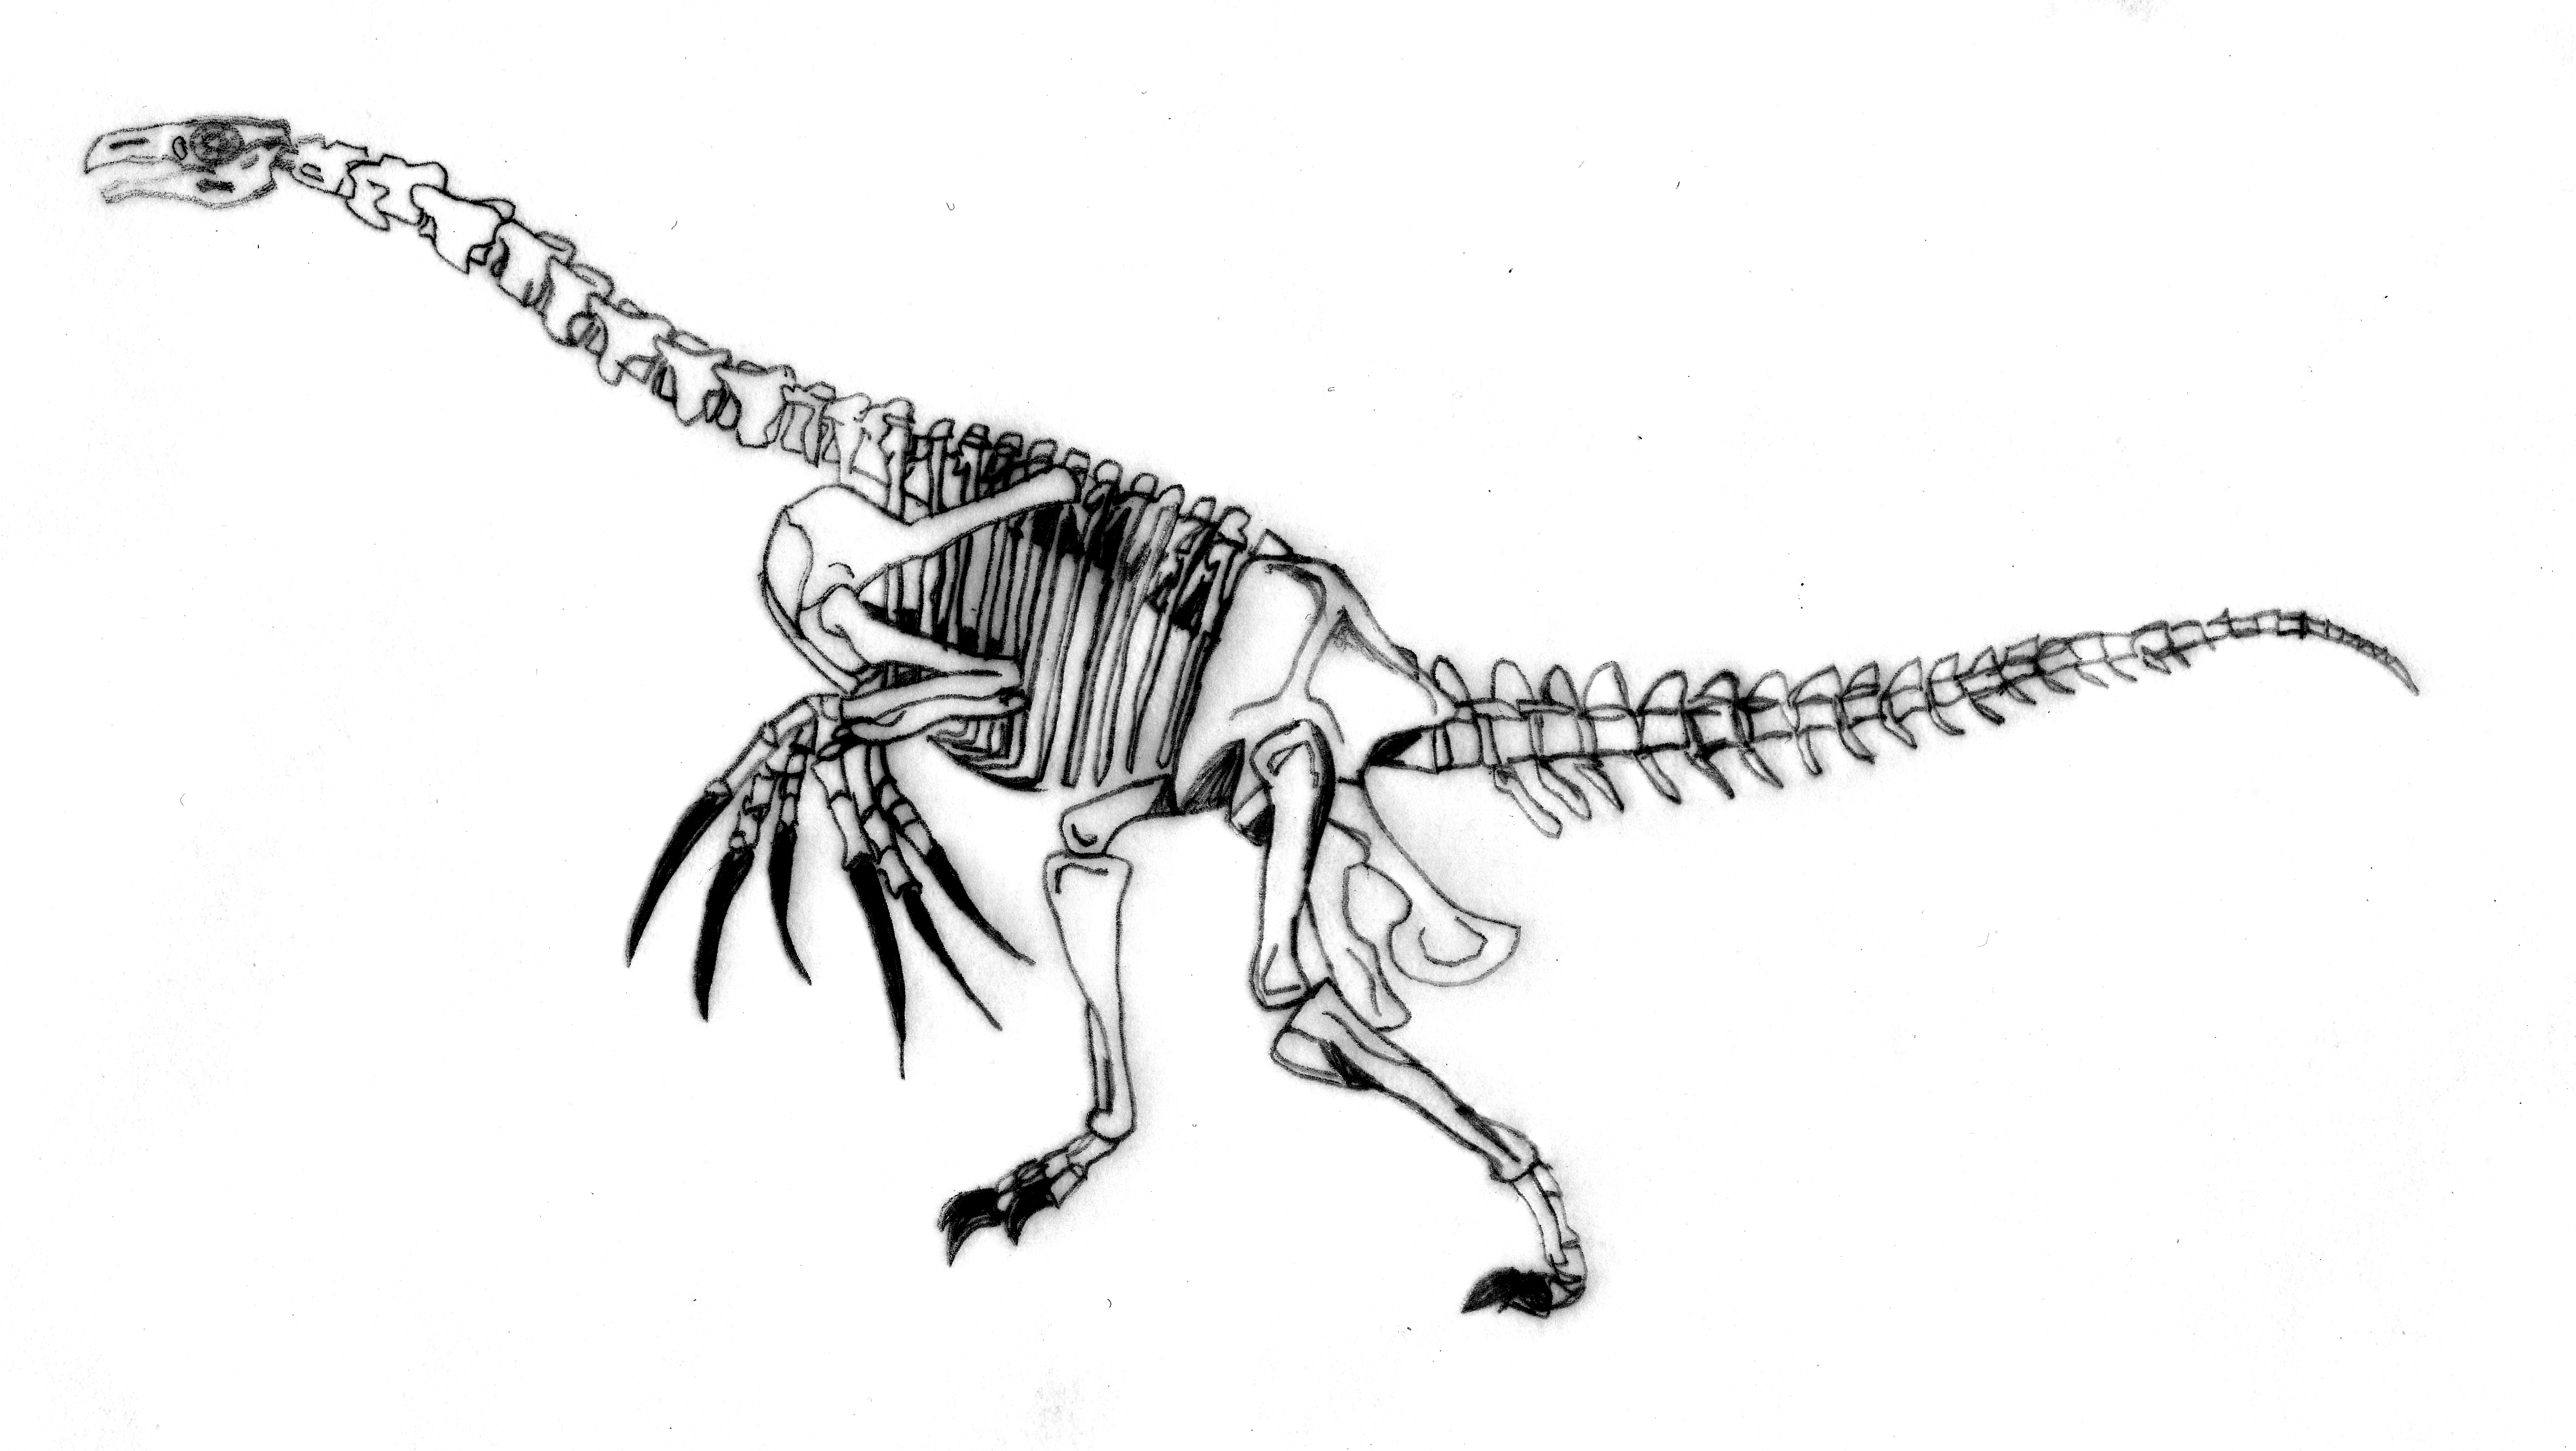 http://images.wikia.com/fossil/images/d/dc/Therizinosaur_skeleton.jpg